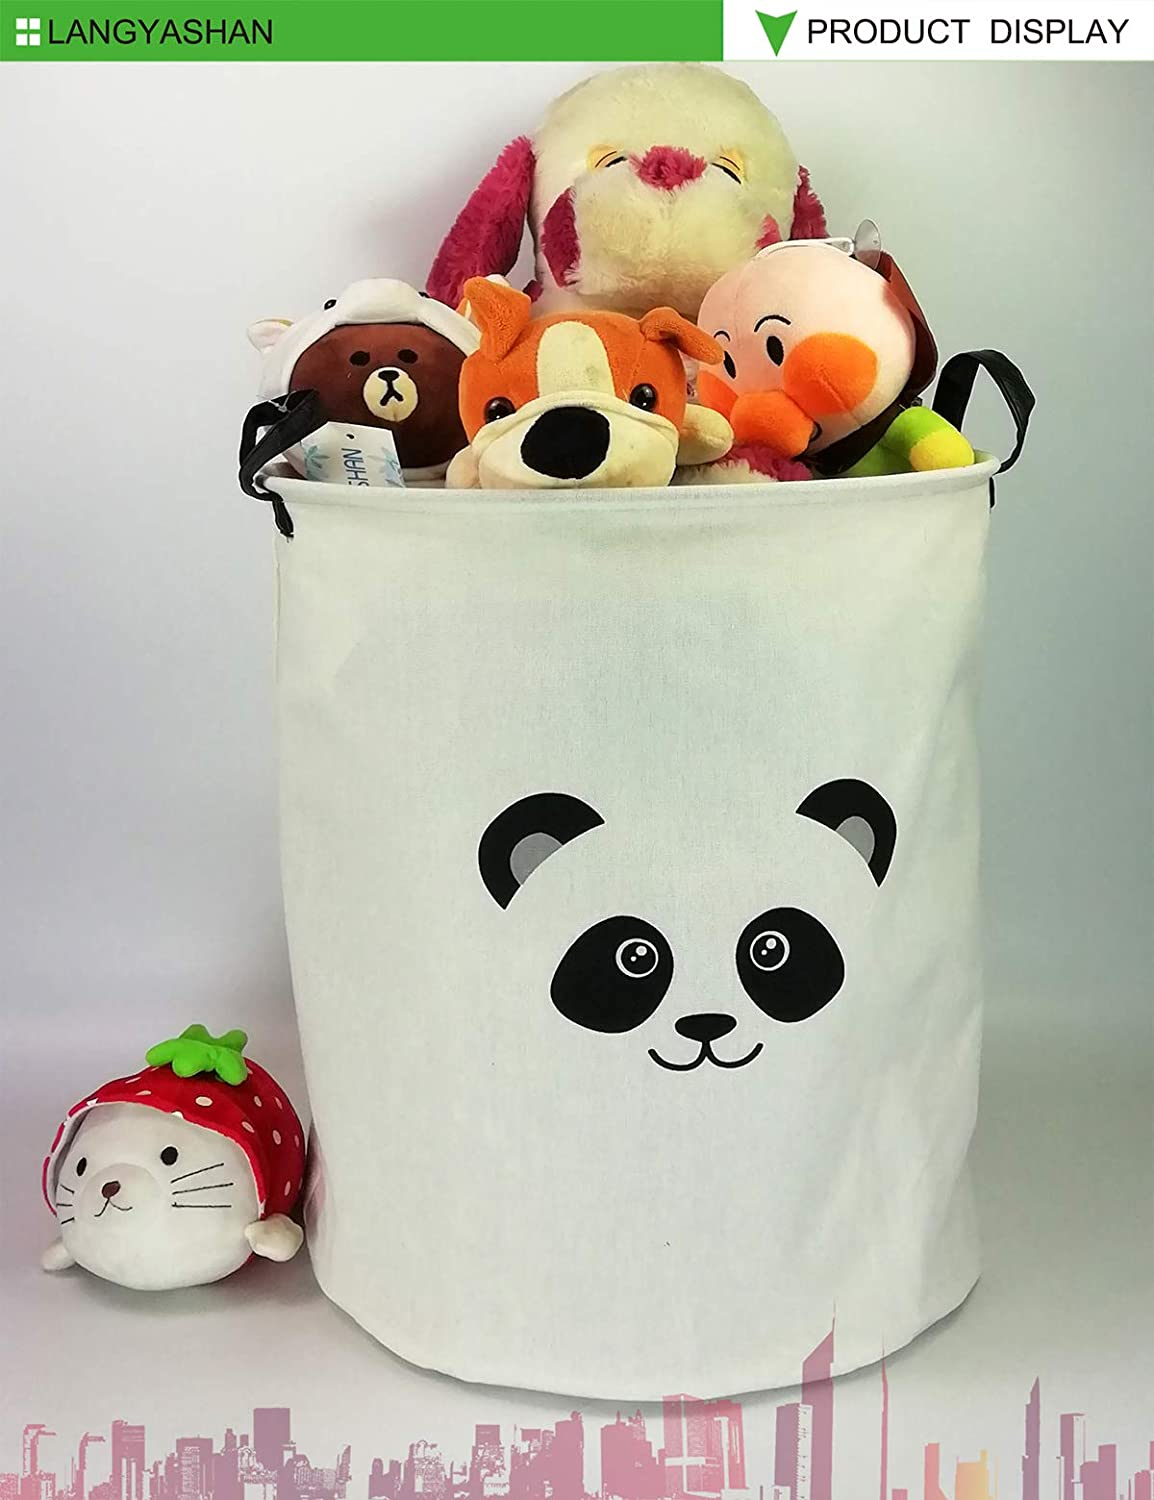 Bedroom Clothes,Baby Nursery LANGYASHAN Storage Bin,Canvas Fabric Collapsible Organizer Basket for Laundry Hamper,Toy Bins,Gift Baskets Panda